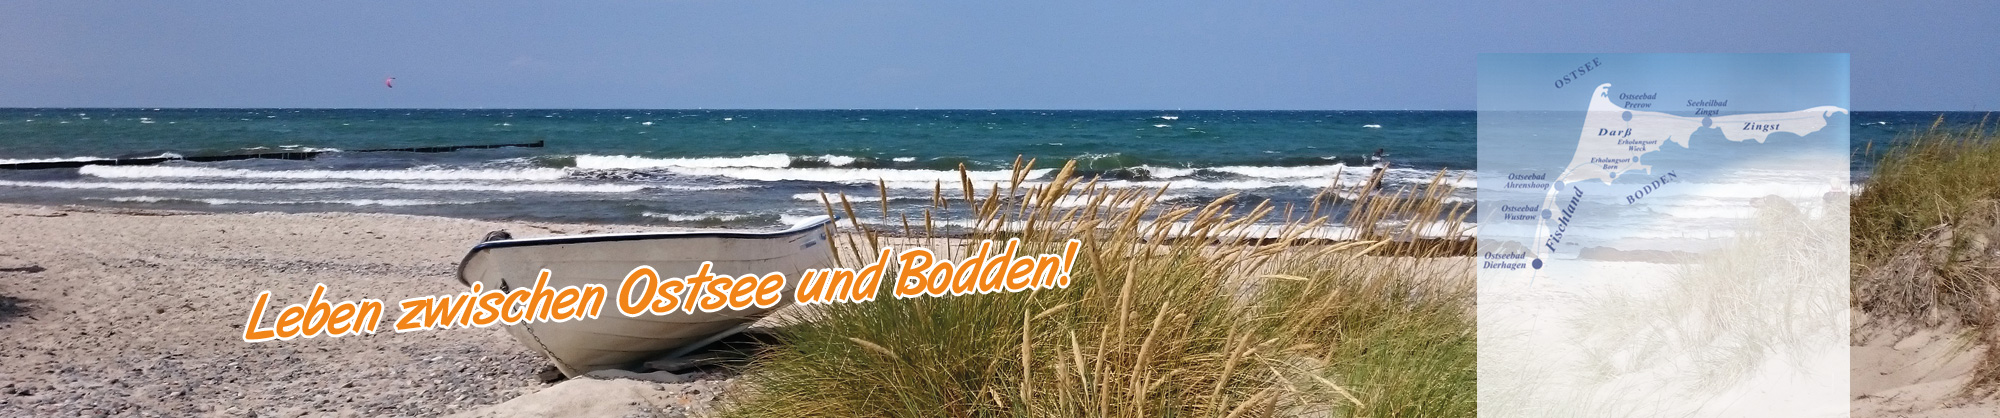 wellinghorst-immobilien-ostsee